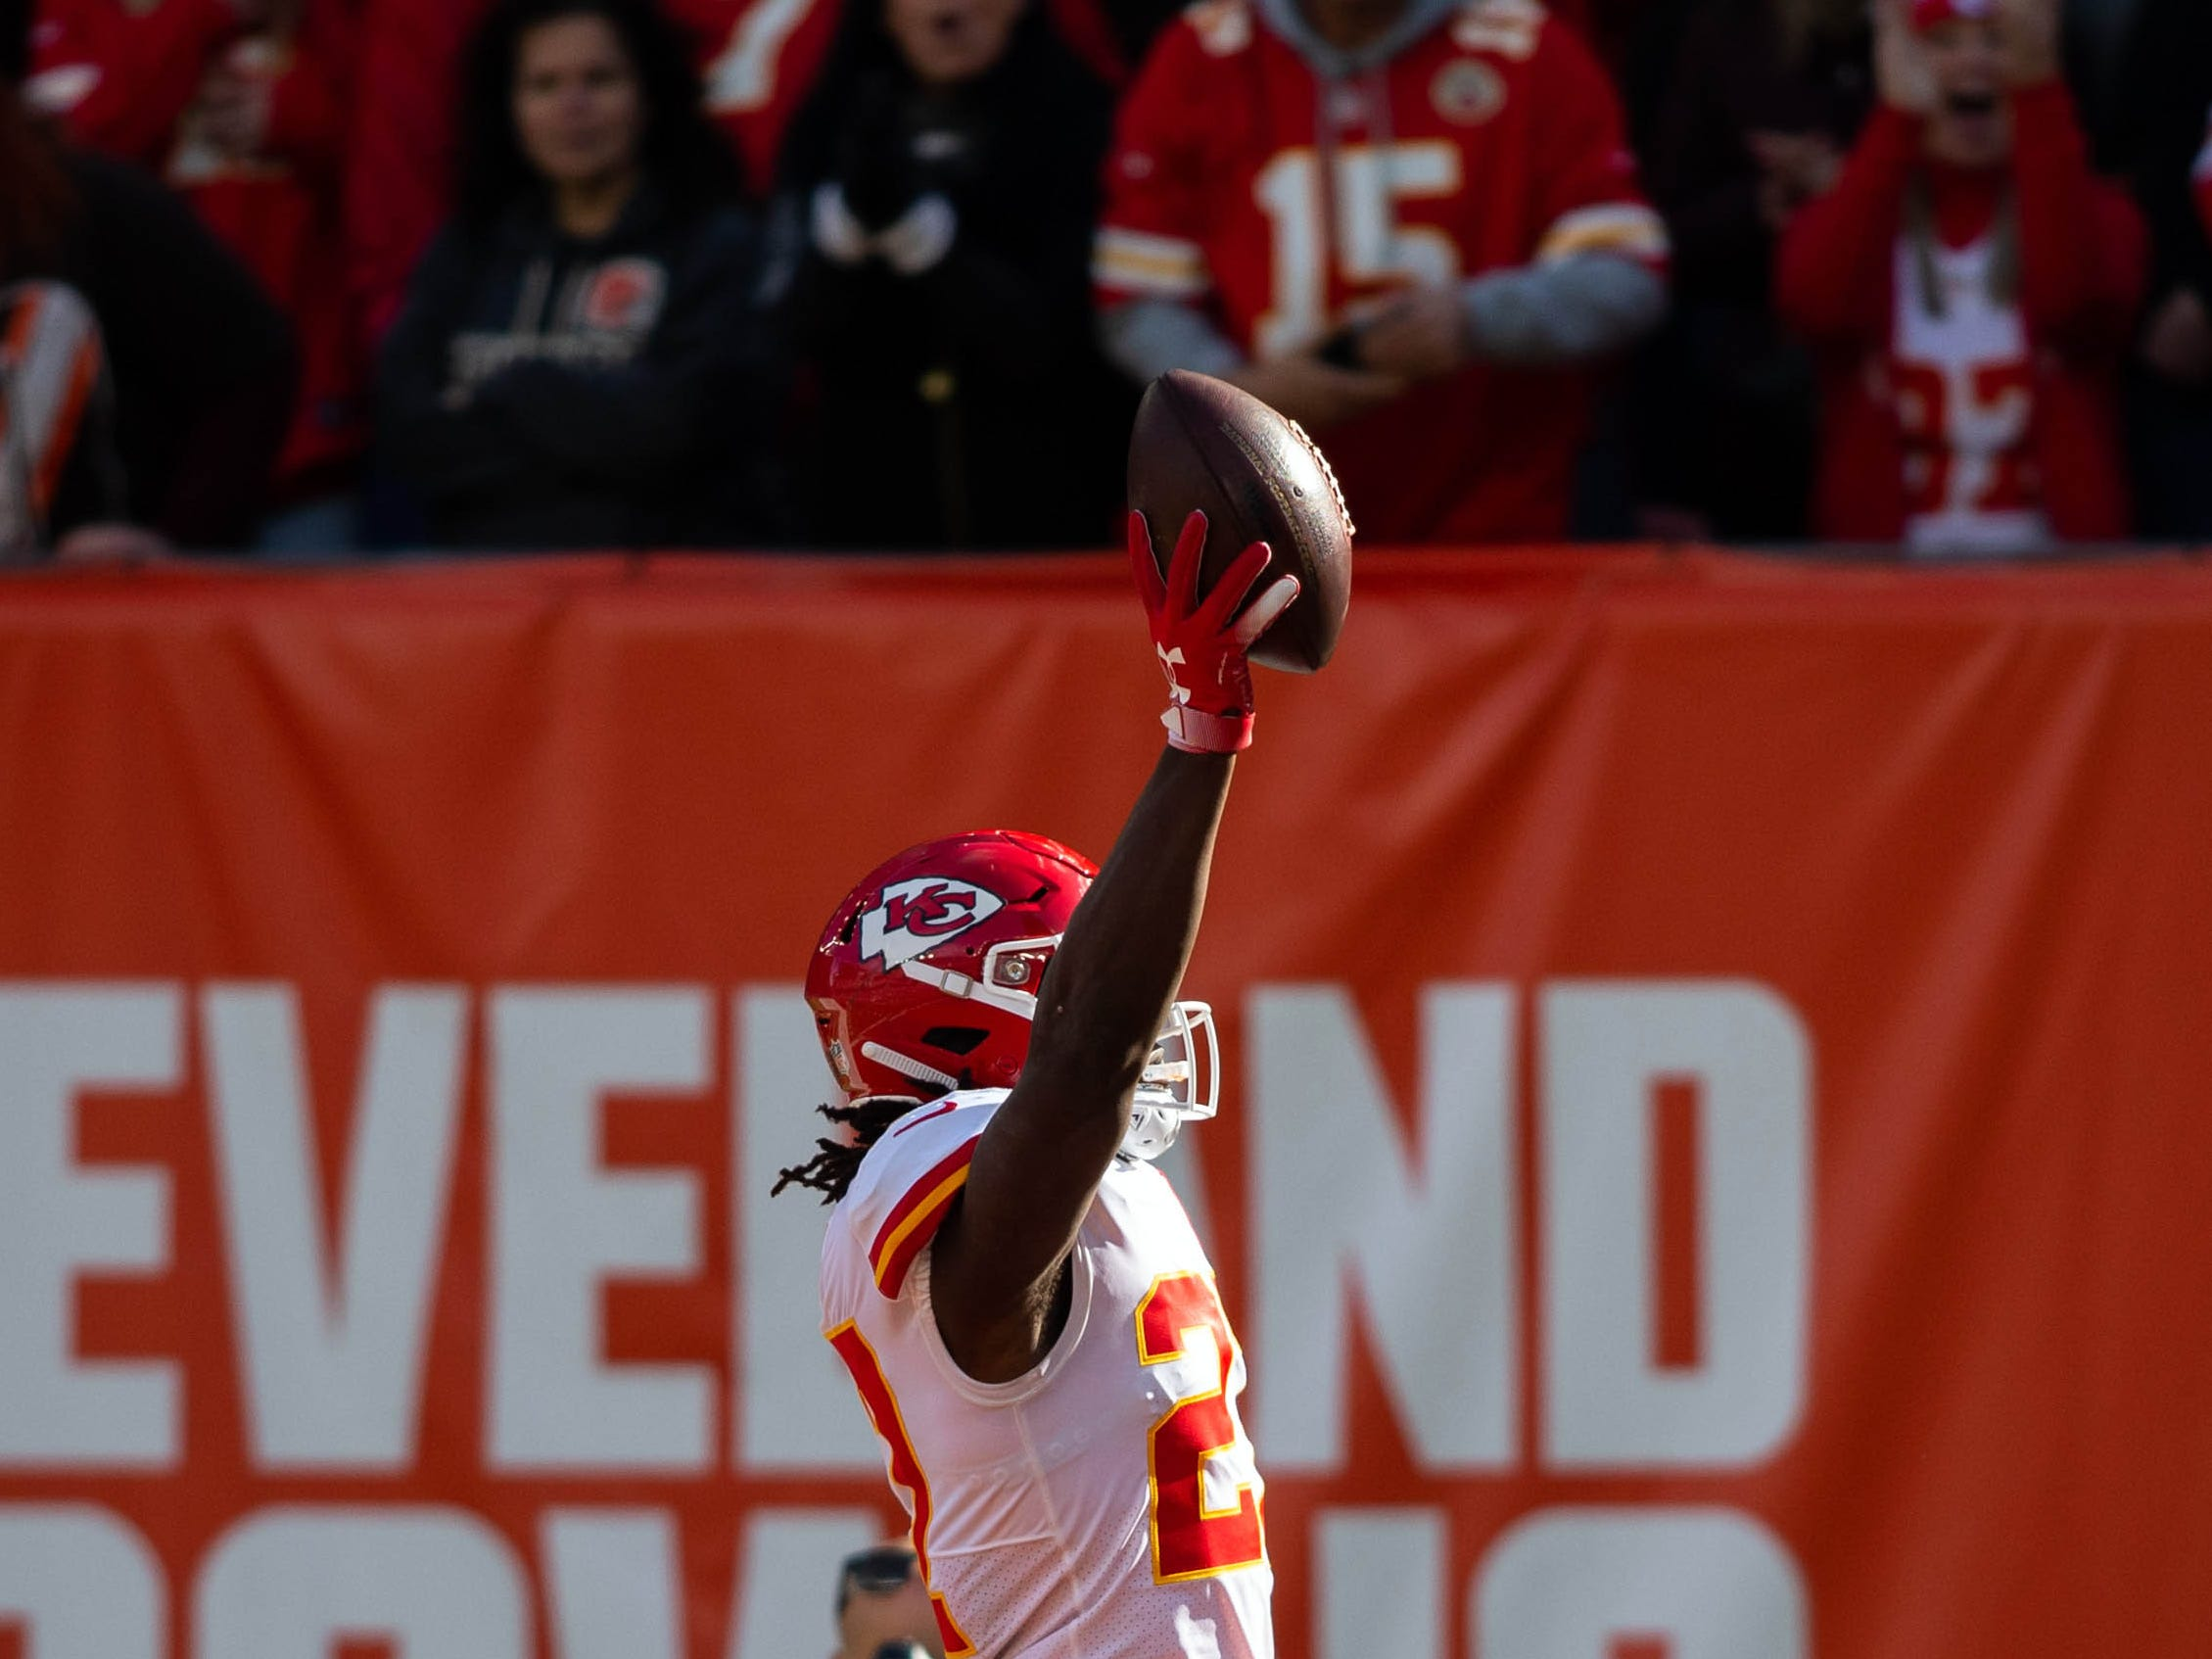 Kansas City Chiefs running back Kareem Hunt (27) tallies a first-quarter TD against the Cleveland Browns at FirstEnergy Stadium.